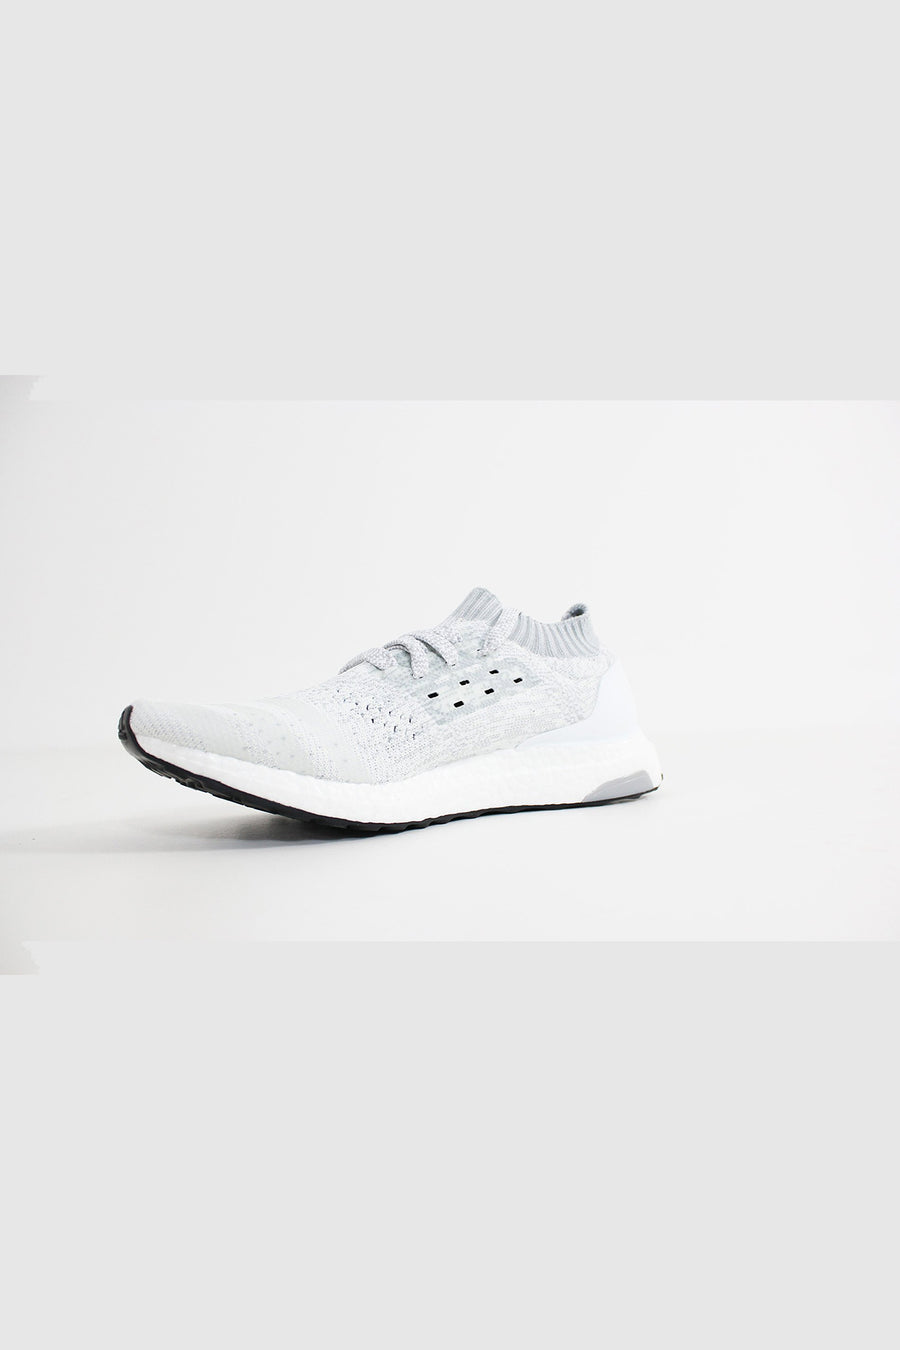 Adidas - Ultraboost Uncaged (Ftwr White/ White Tint/ Core Black) DA9157